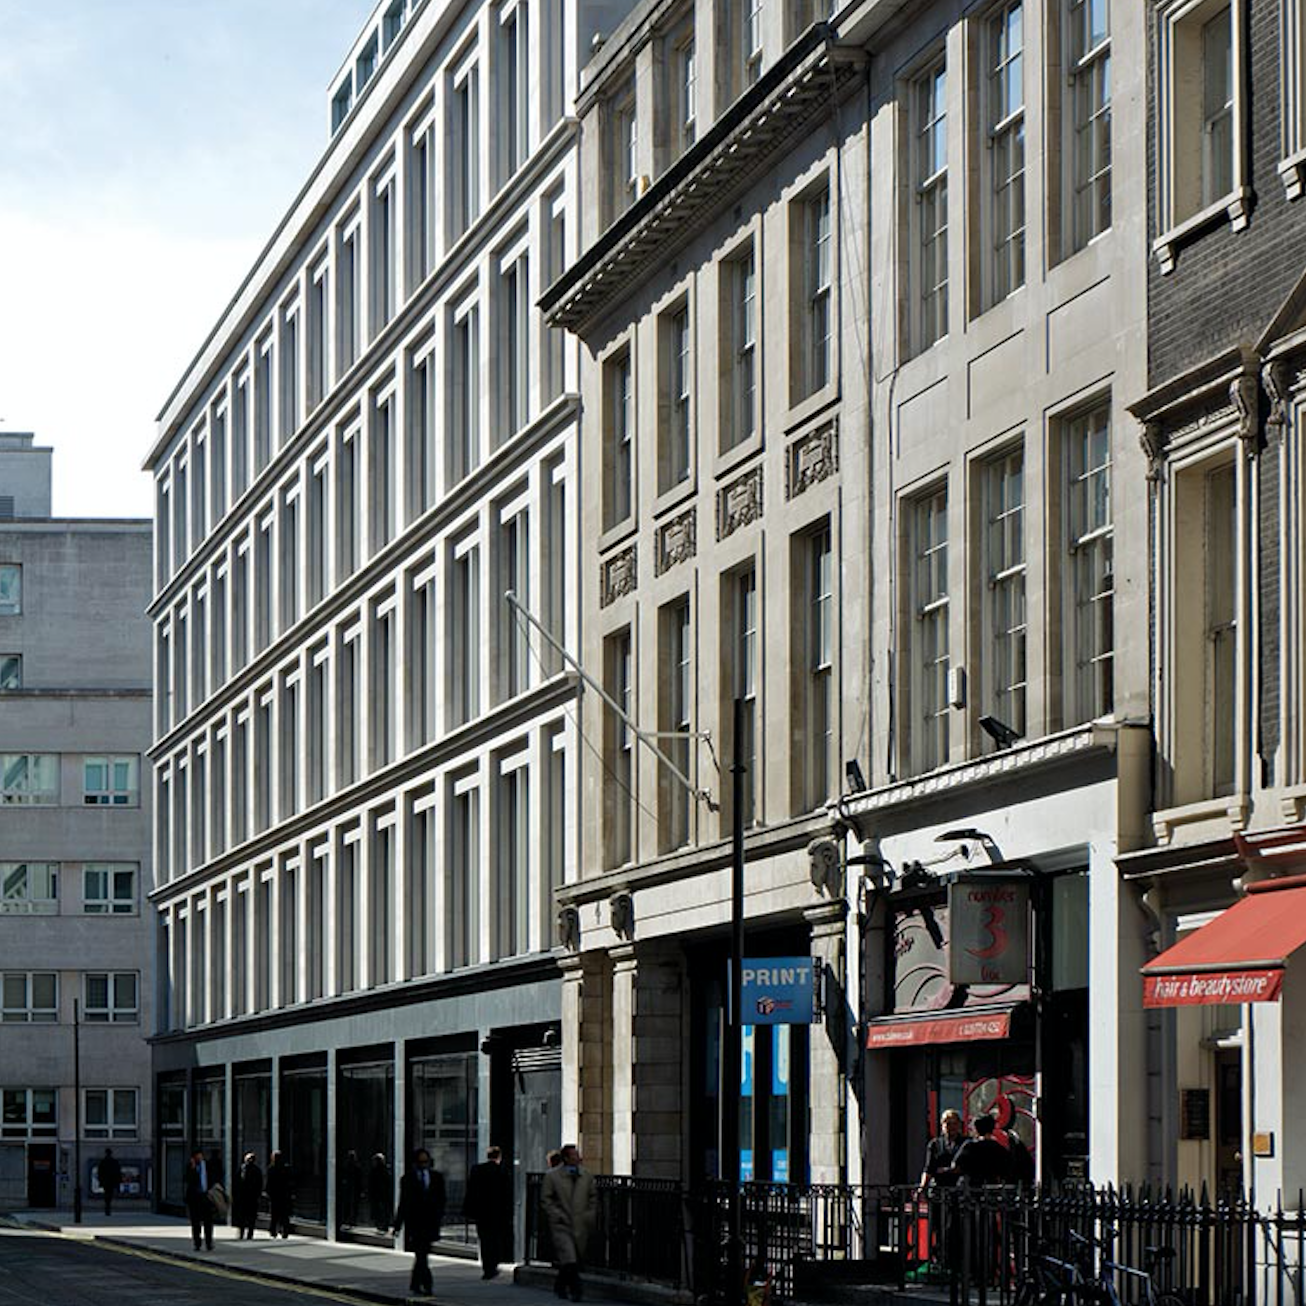 23 Saville Row, London, Eric Parry Architects